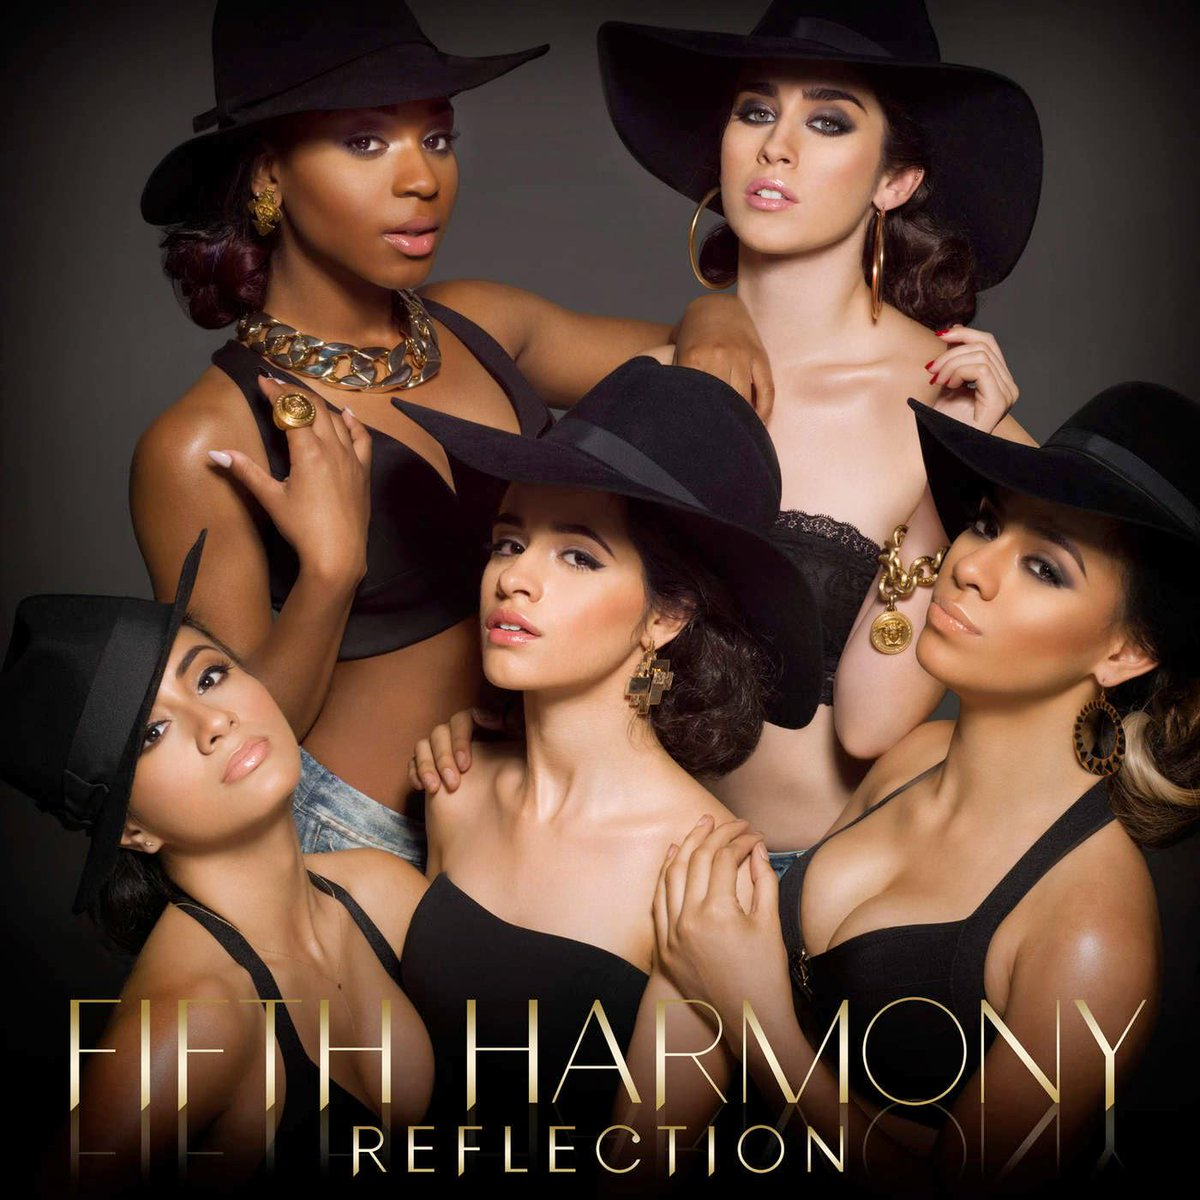 The Week In Pop: @FifthHarmony's Reflection is the first great pop album of 2015 http://t.co/W25dsPZ6gN http://t.co/OqiHOCkLtW